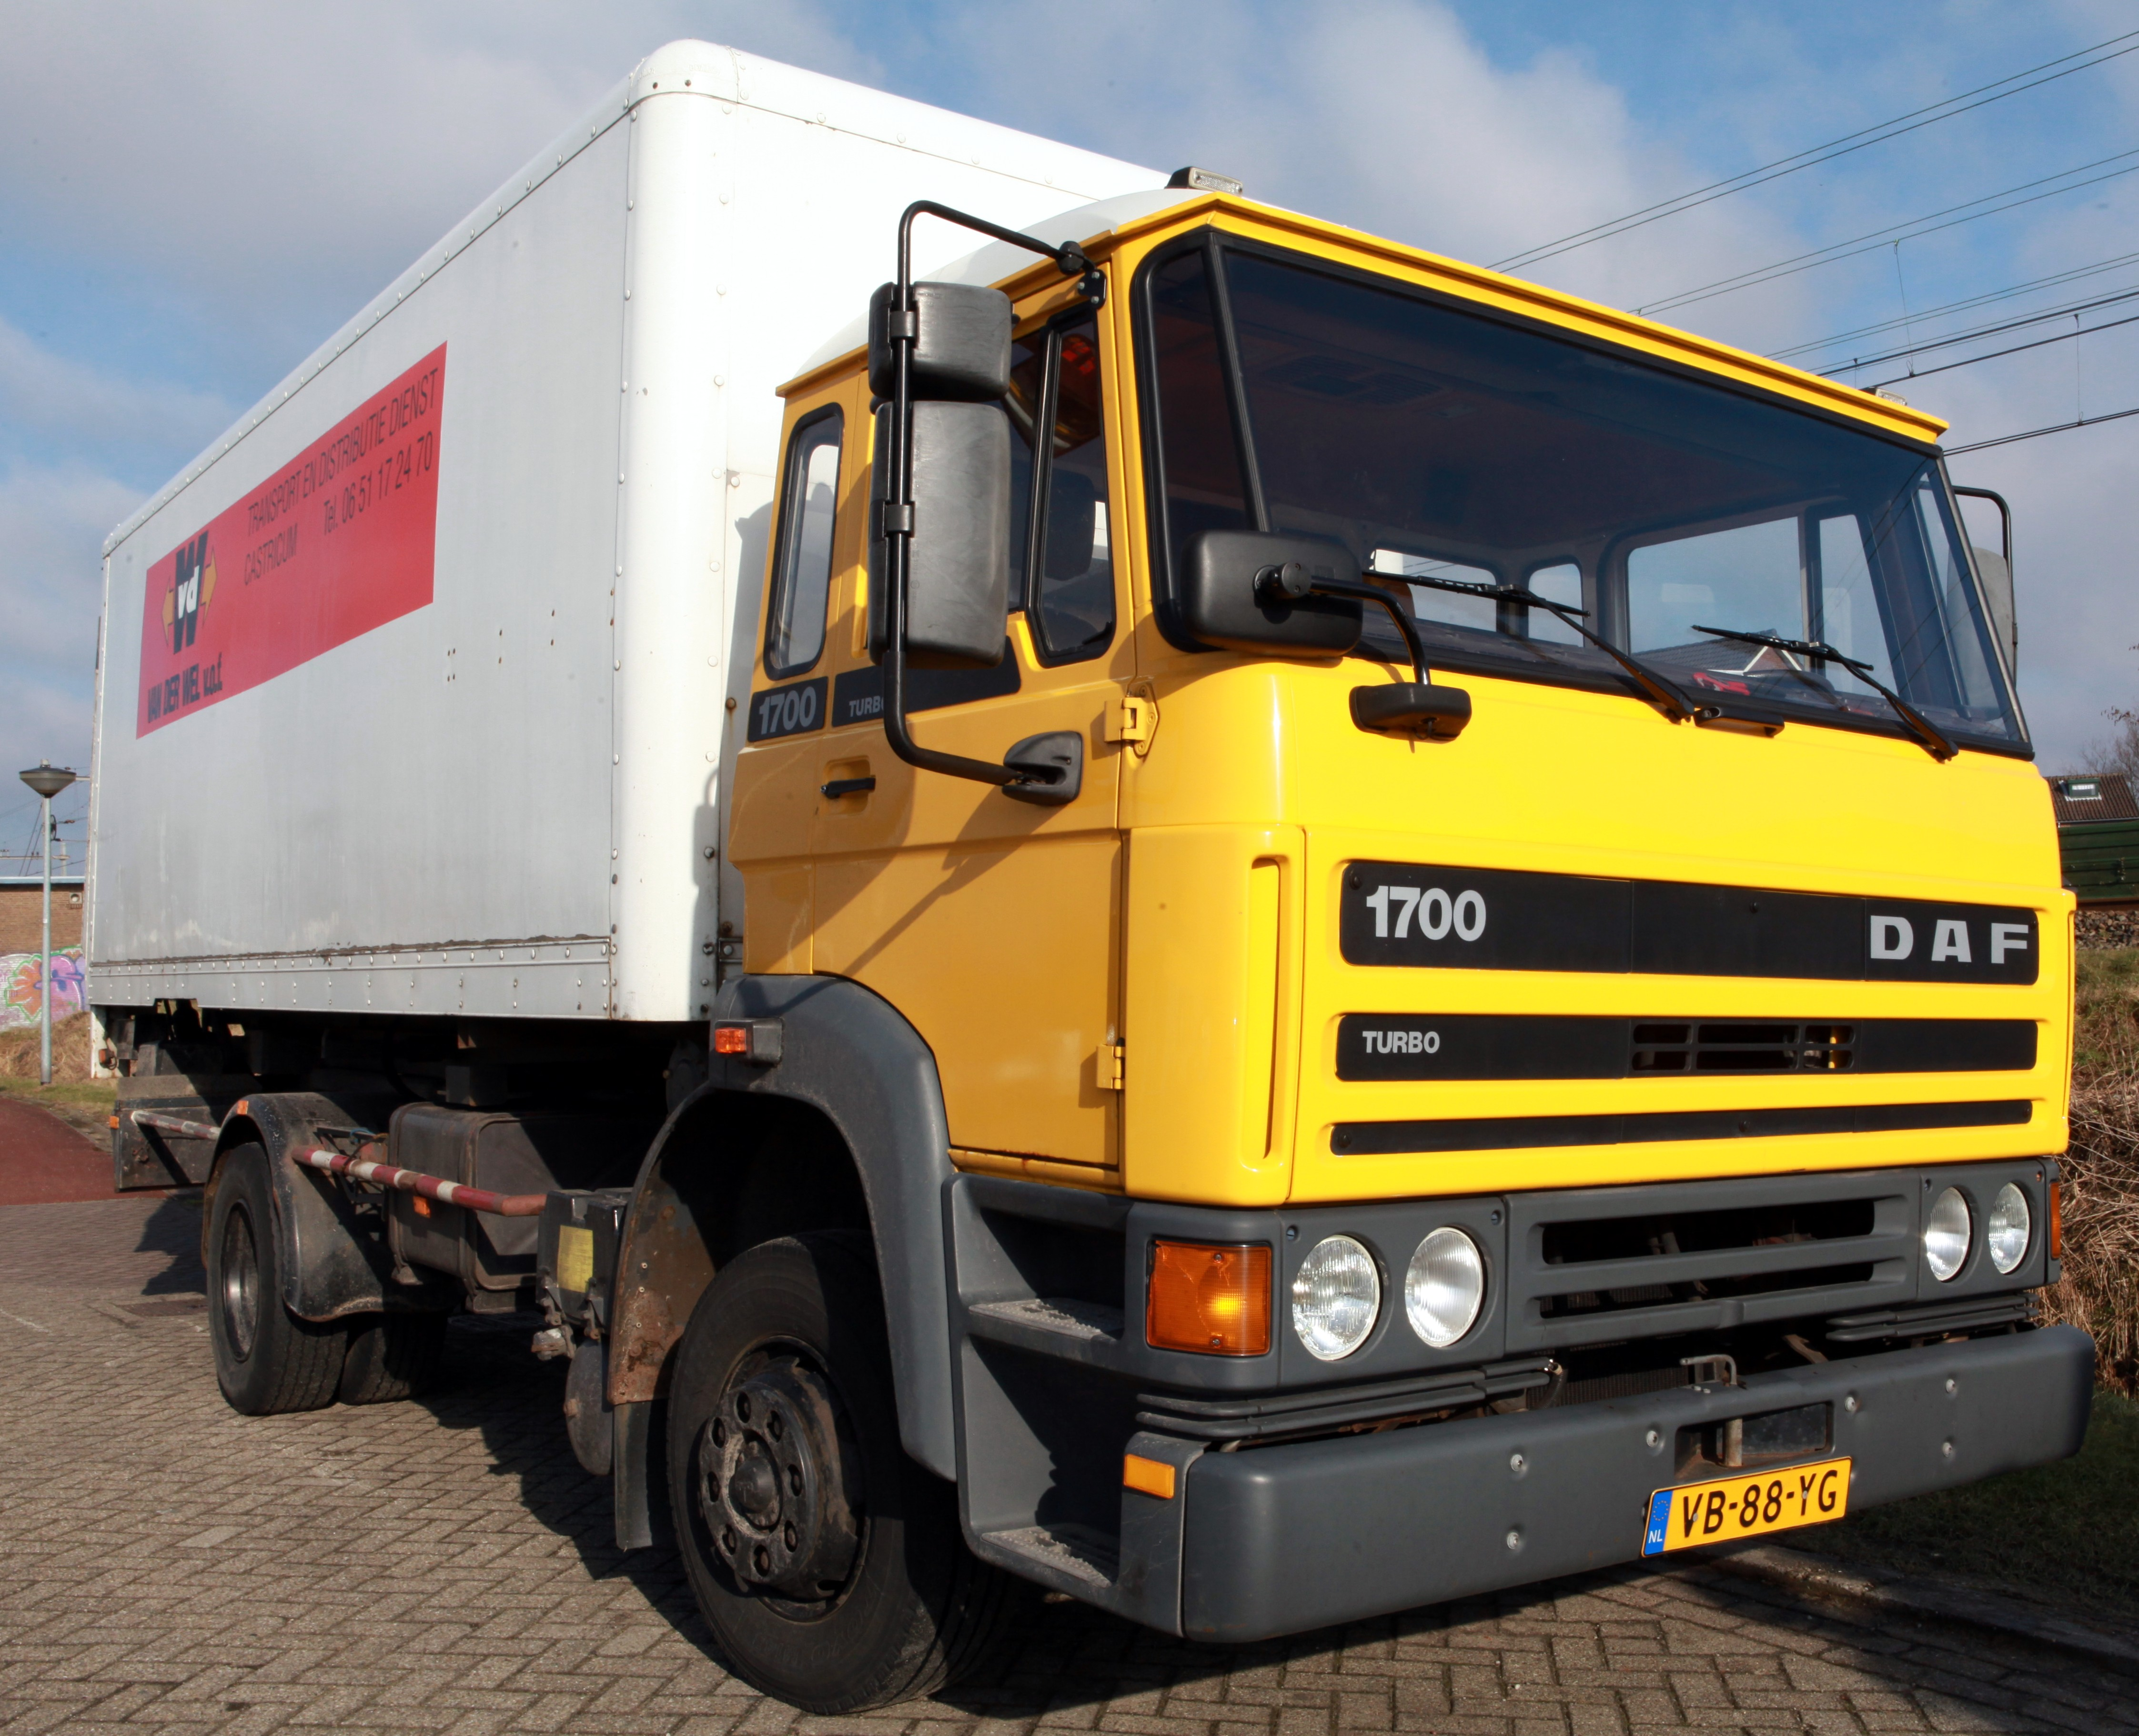 Daf 1700 1900 2100 2300 2500 2700 wikiwand for 2100 2300